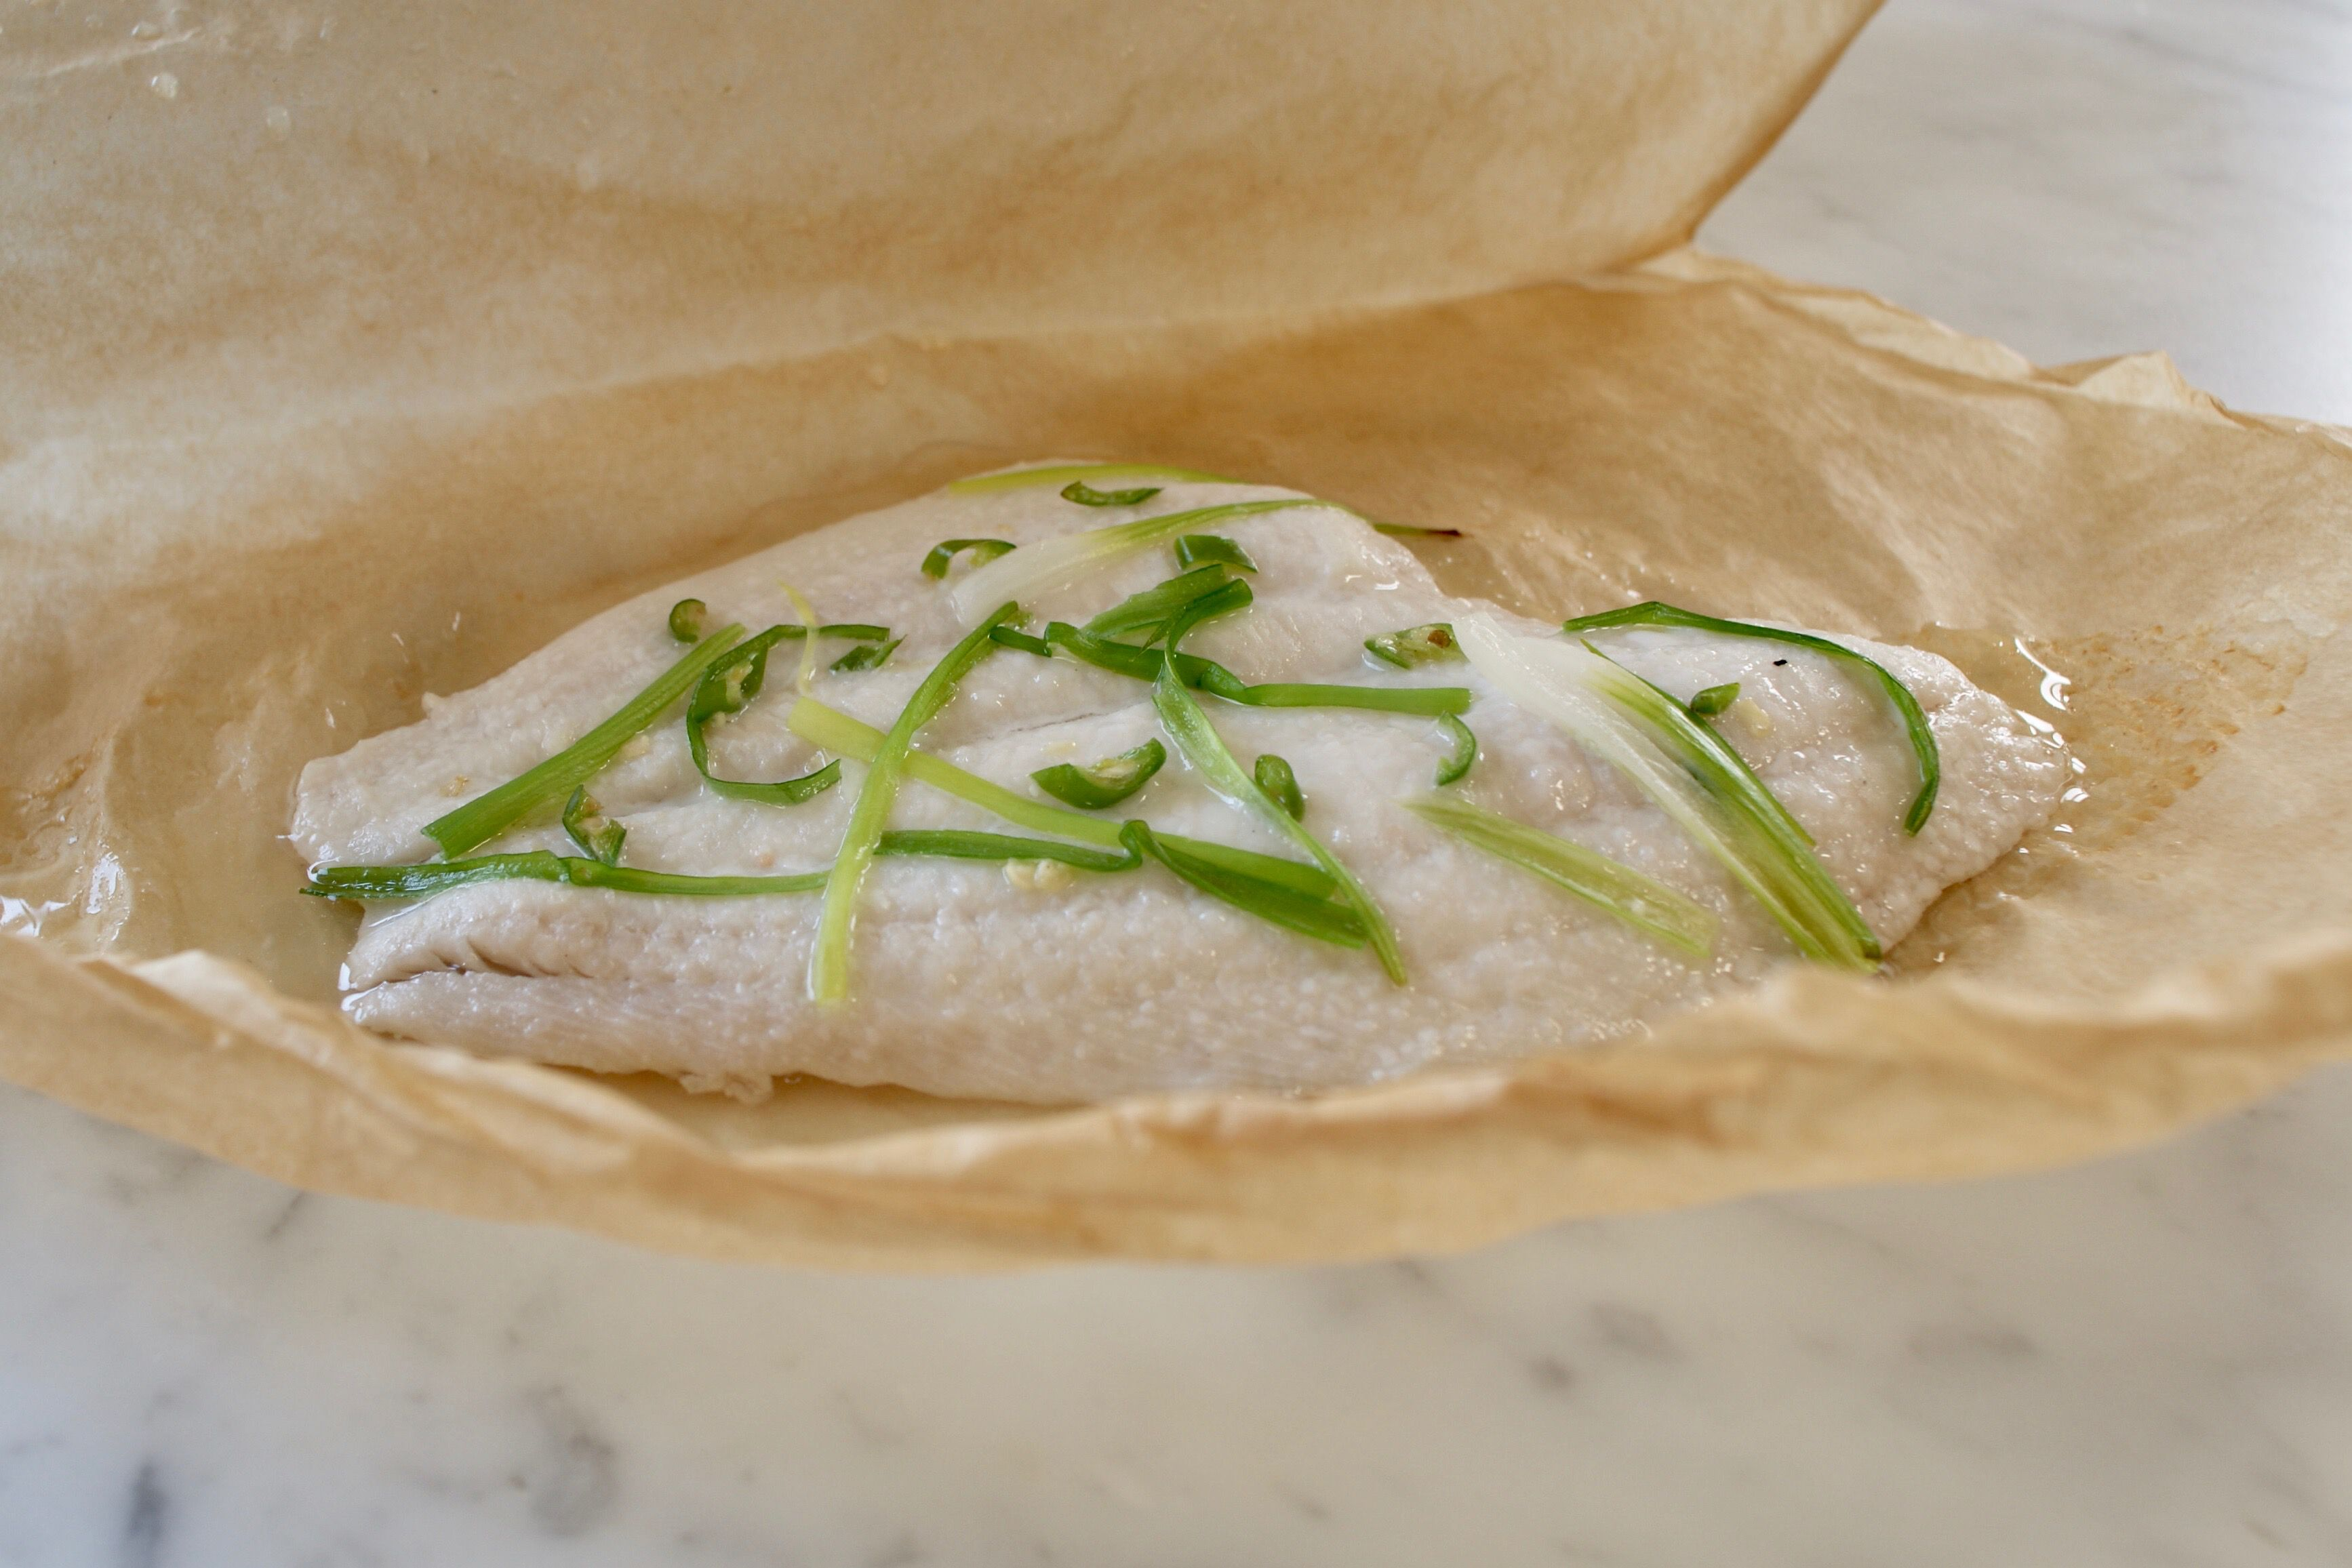 How to Bake Fish in Parchment or Foil